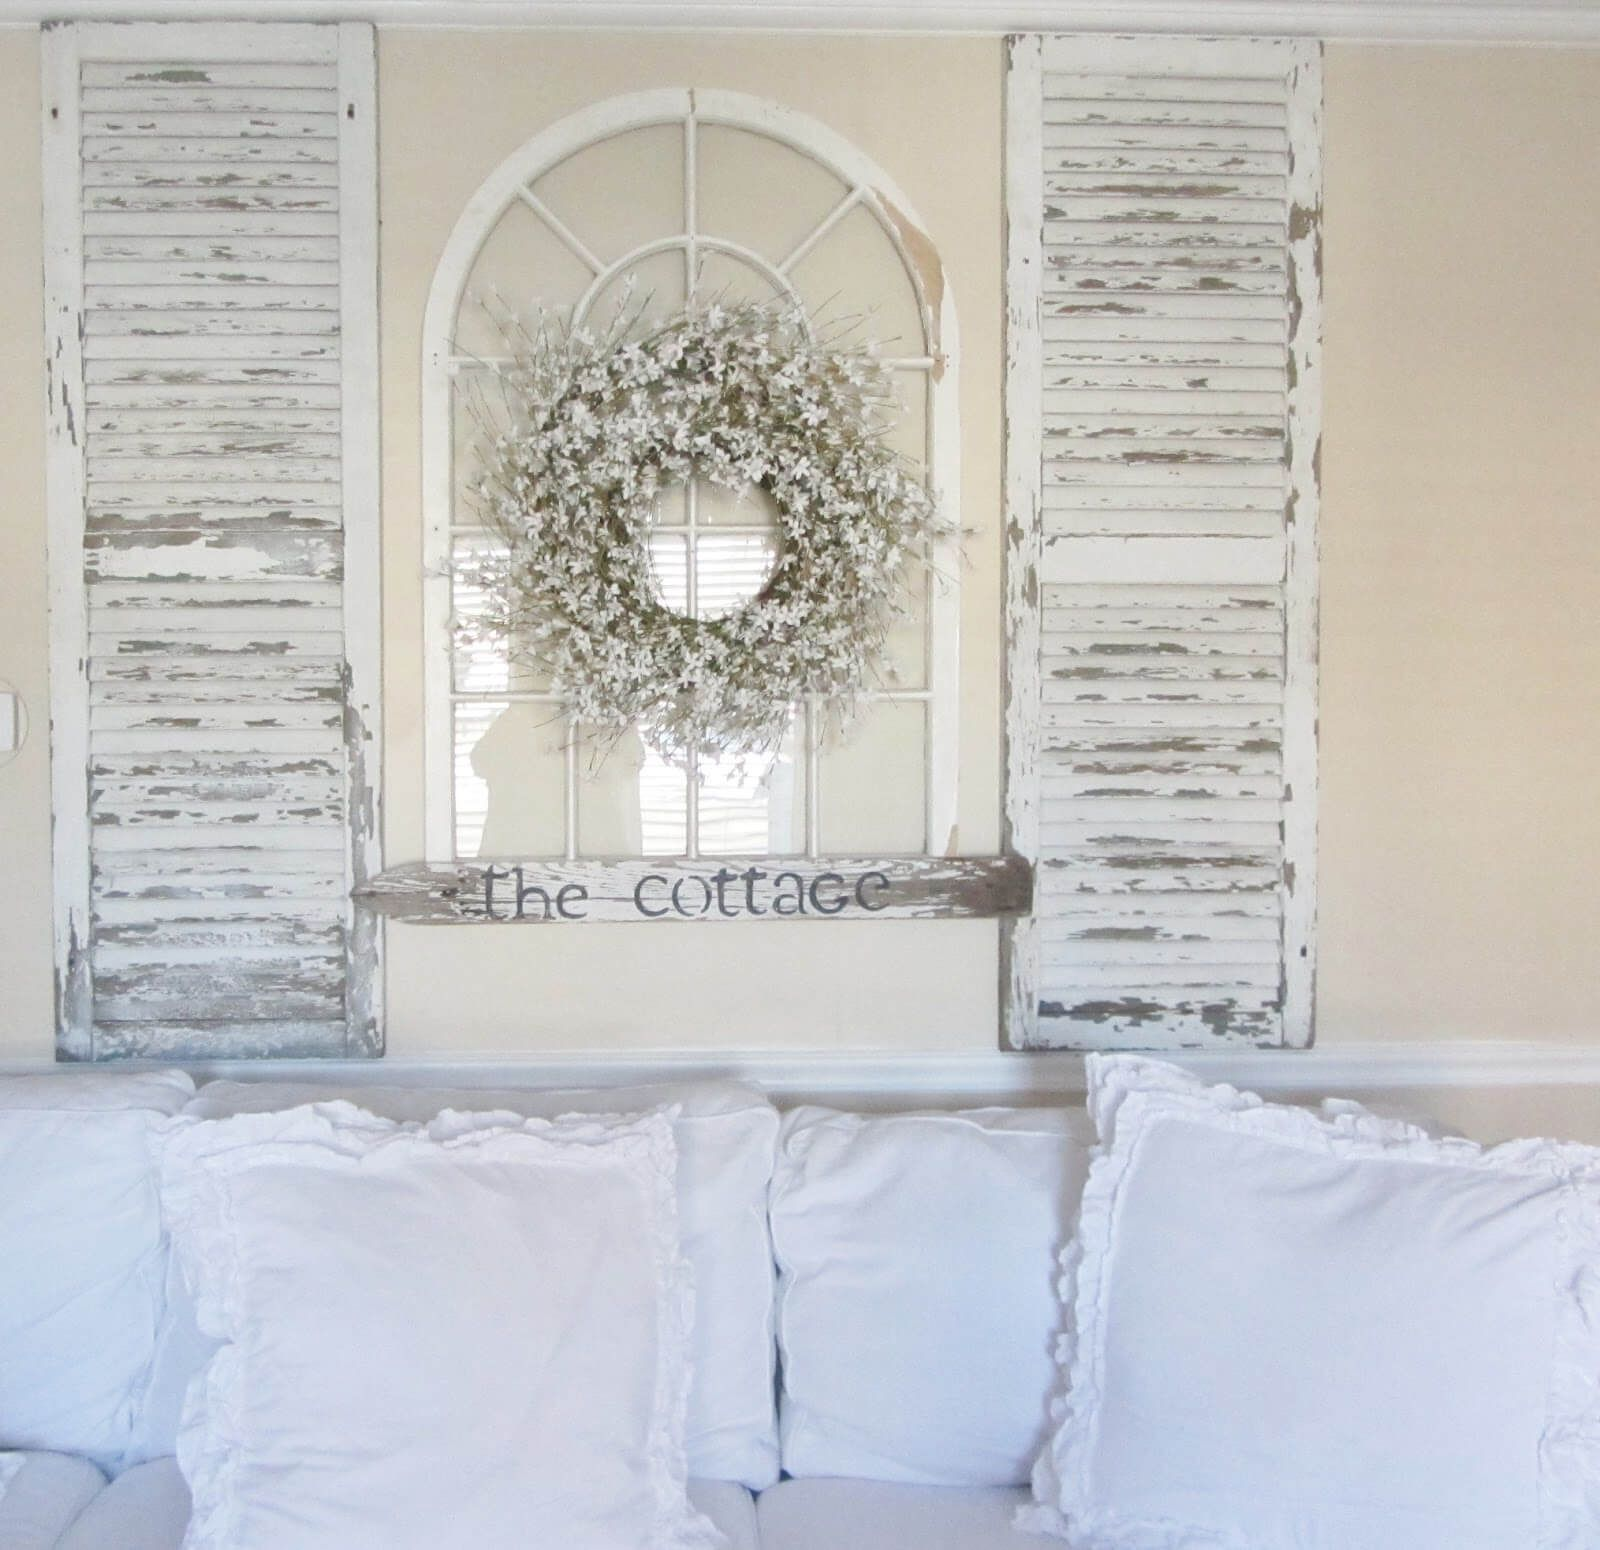 Easy Headboard From Whitewashed Shutters And Window Frame | Home ...